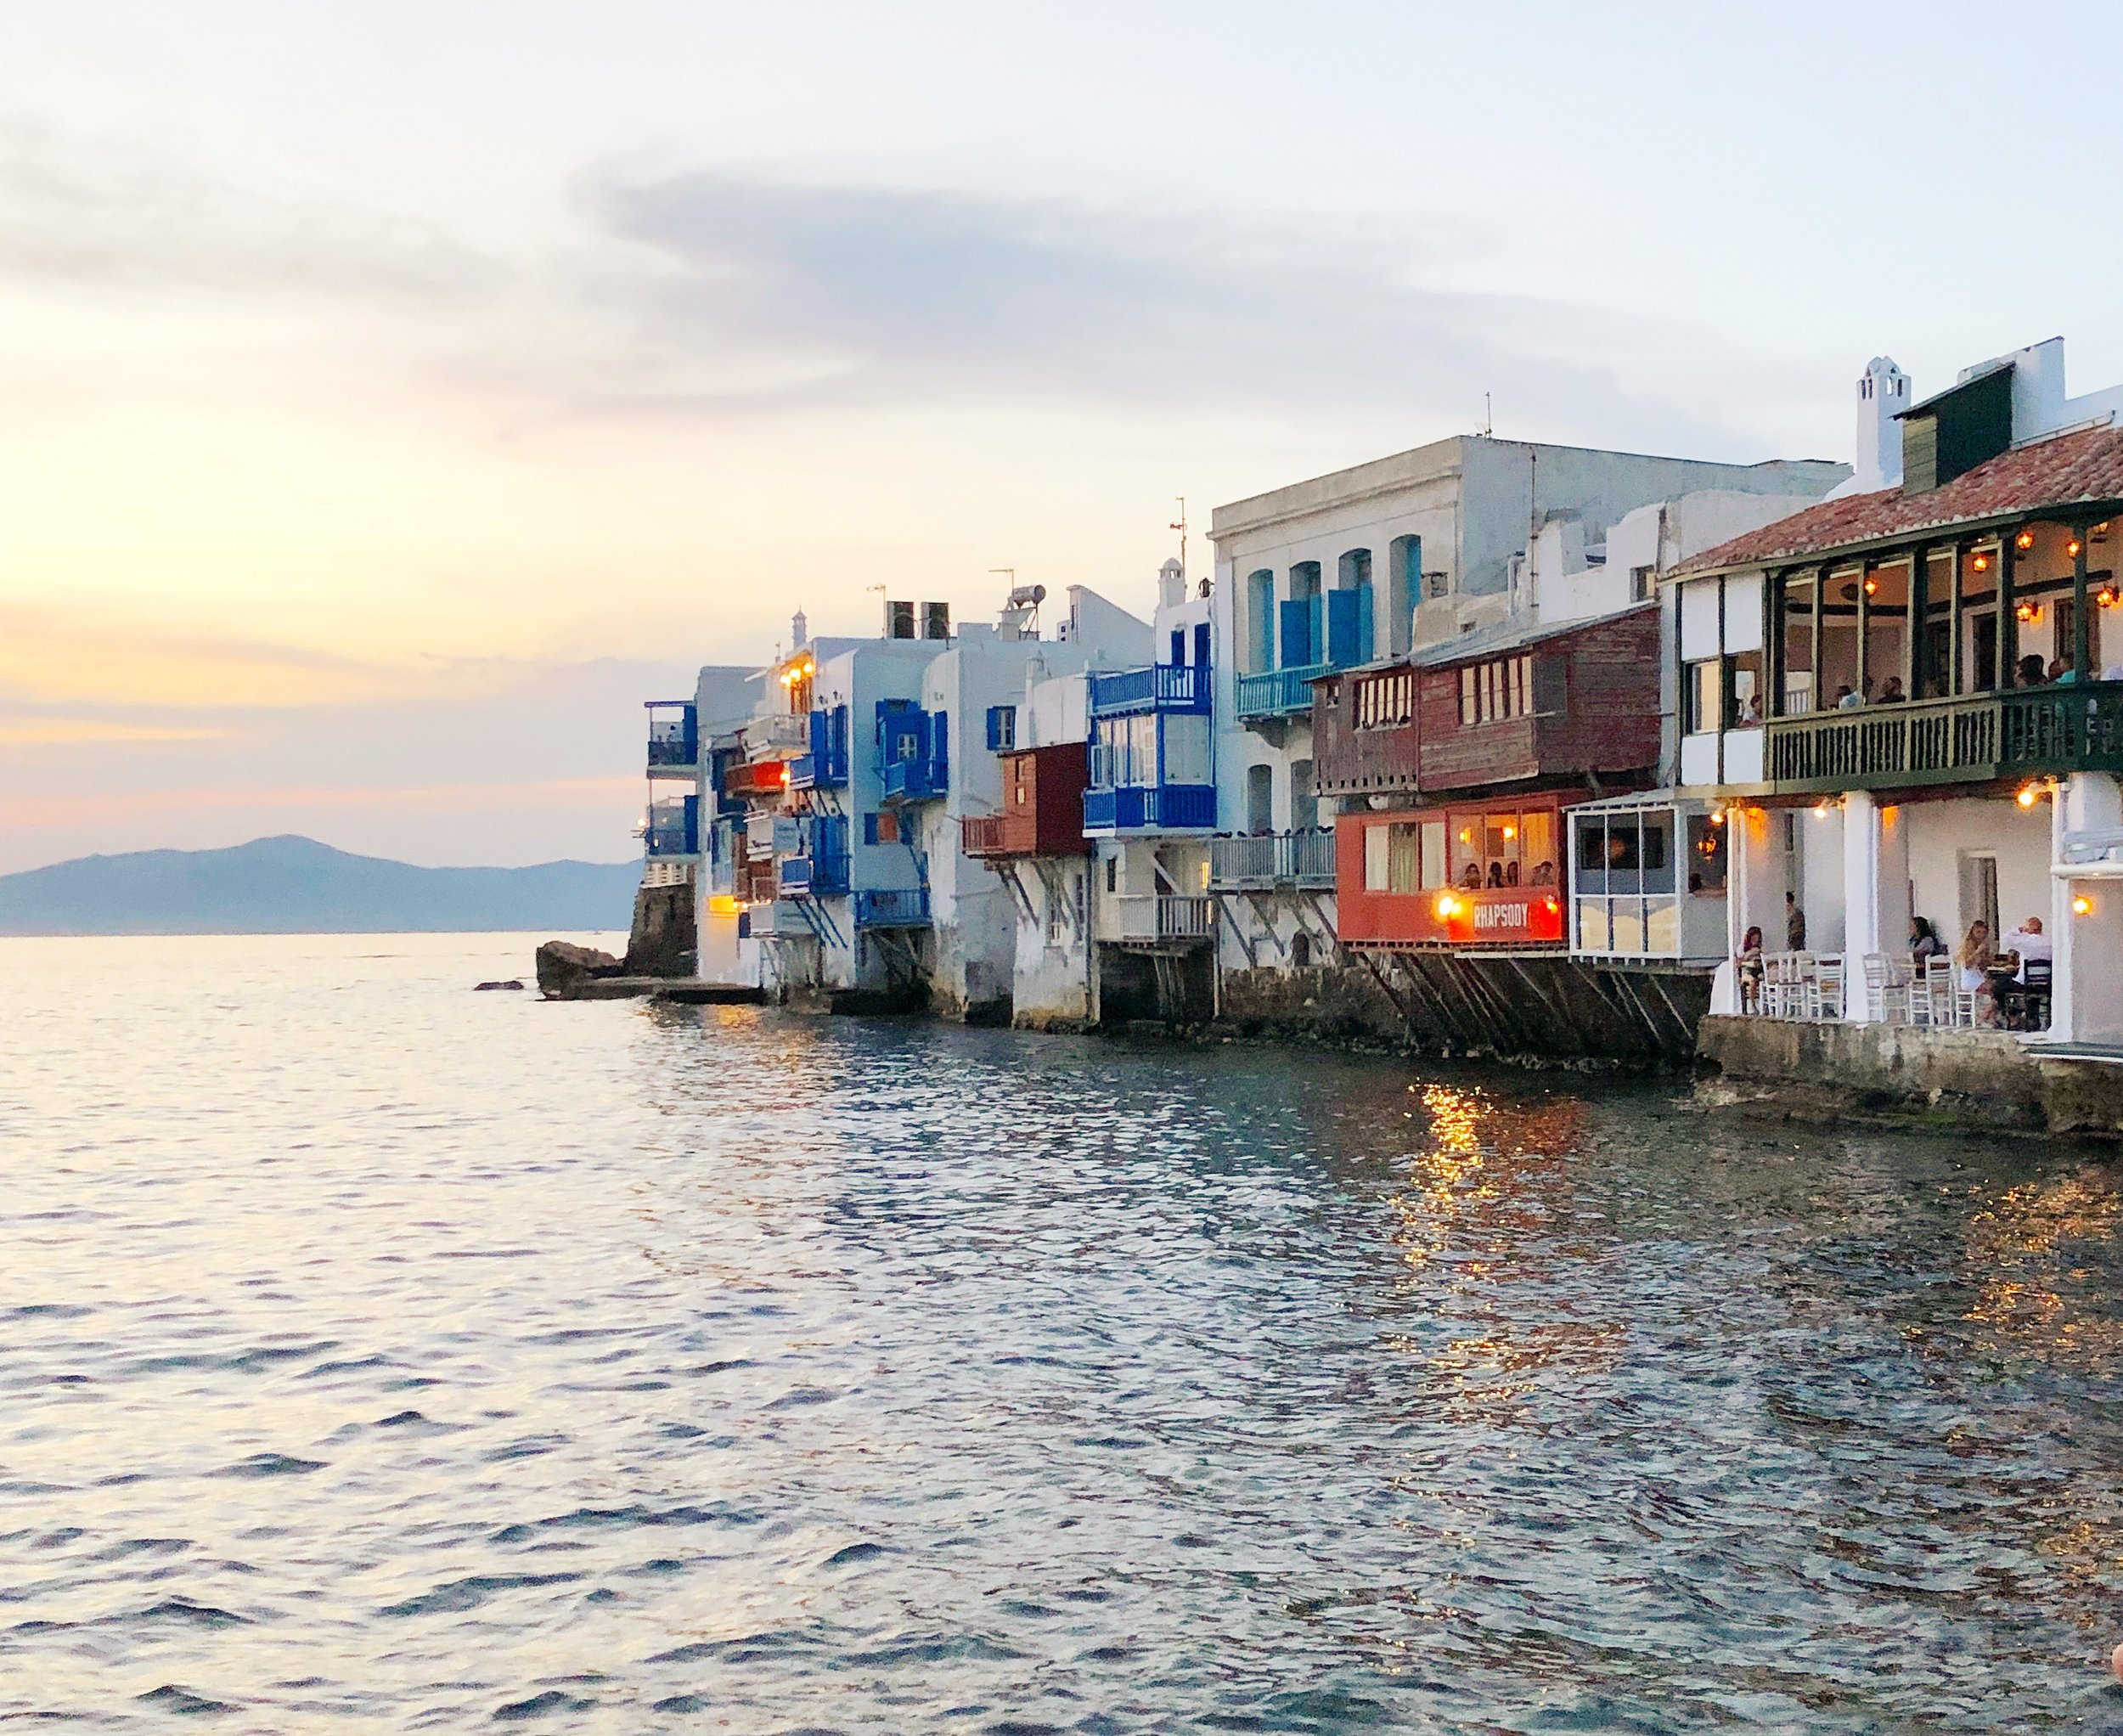 The Little Venice neighborhood in Mykonos - can't beat that view!